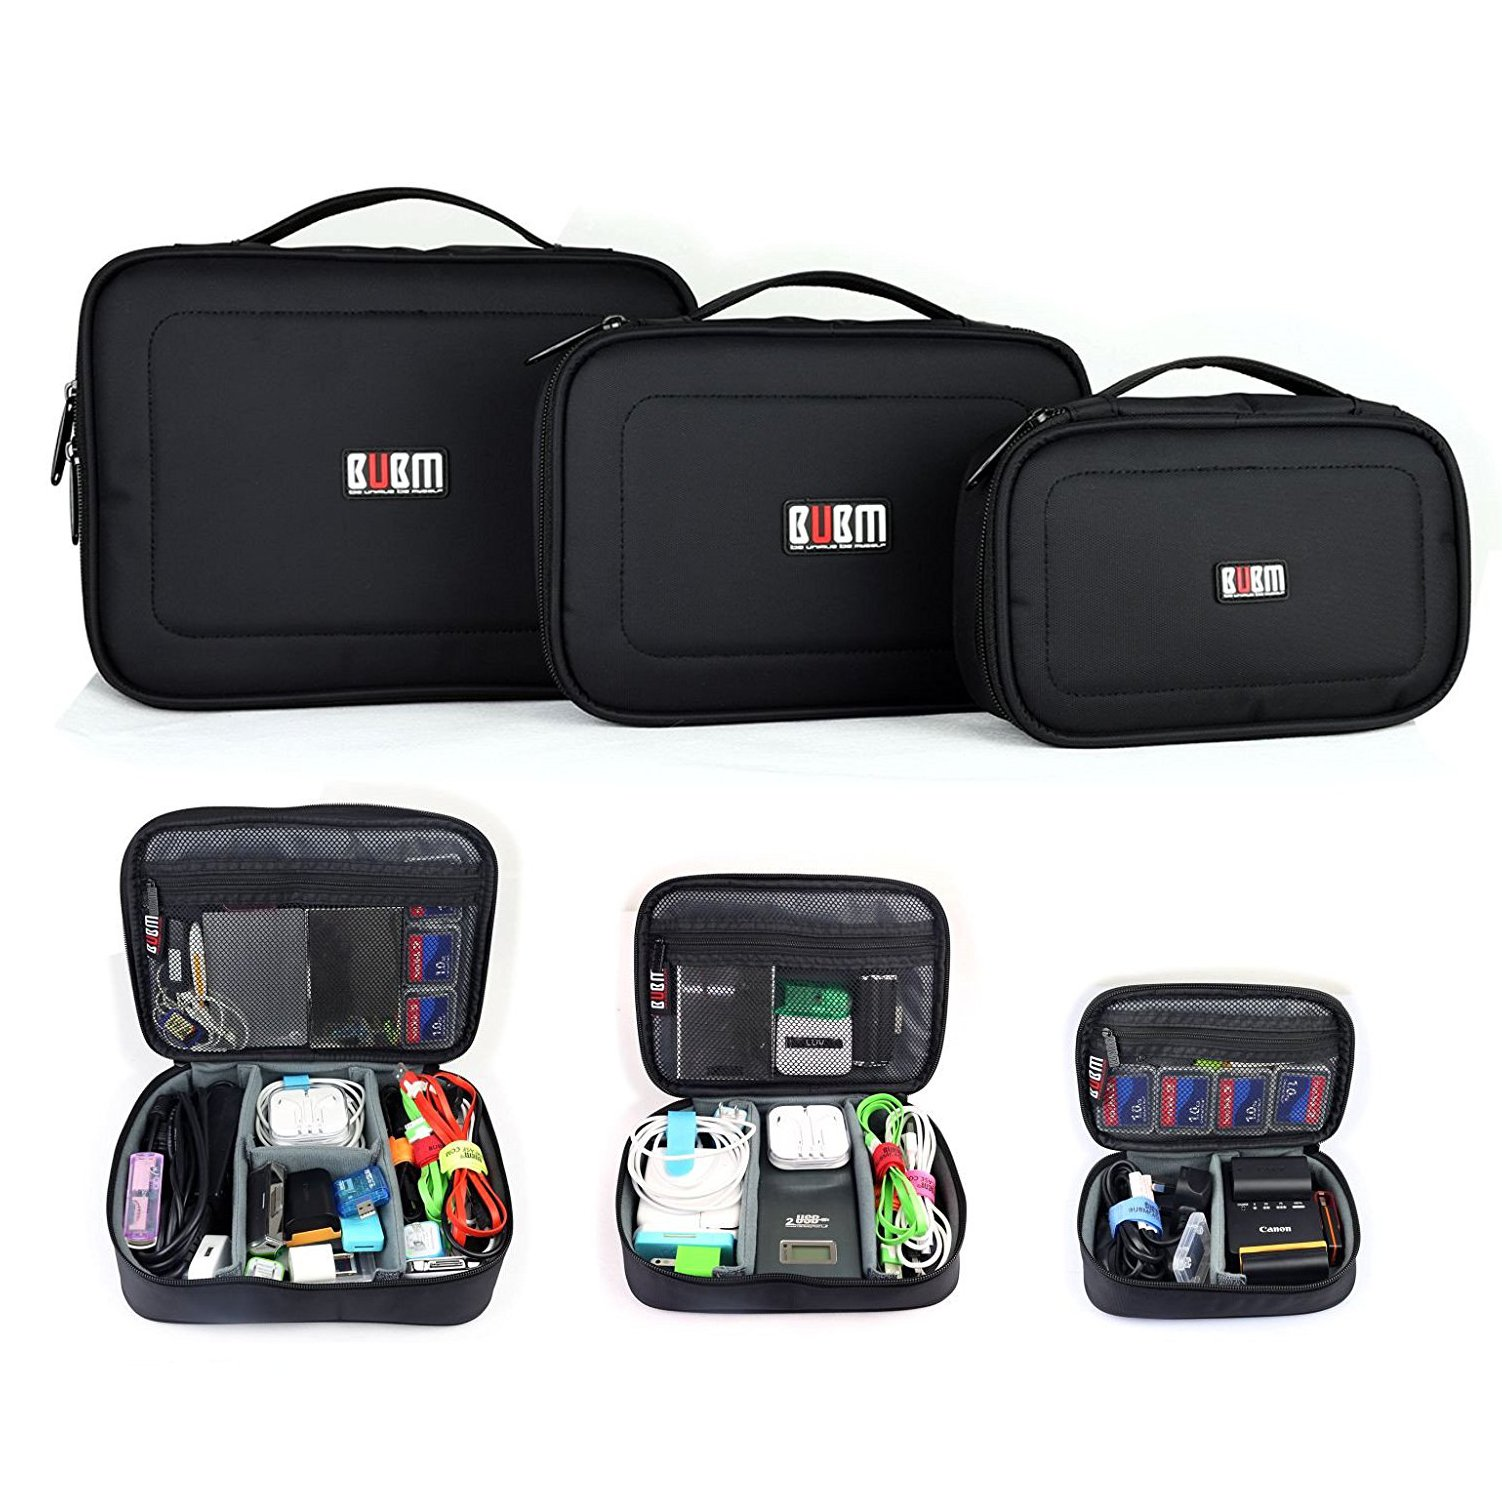 BUBM 3pcs/set Travel Office Gear Organizer Electronics Accessories Bag Small Gadget Carry Storage Bag Pouch